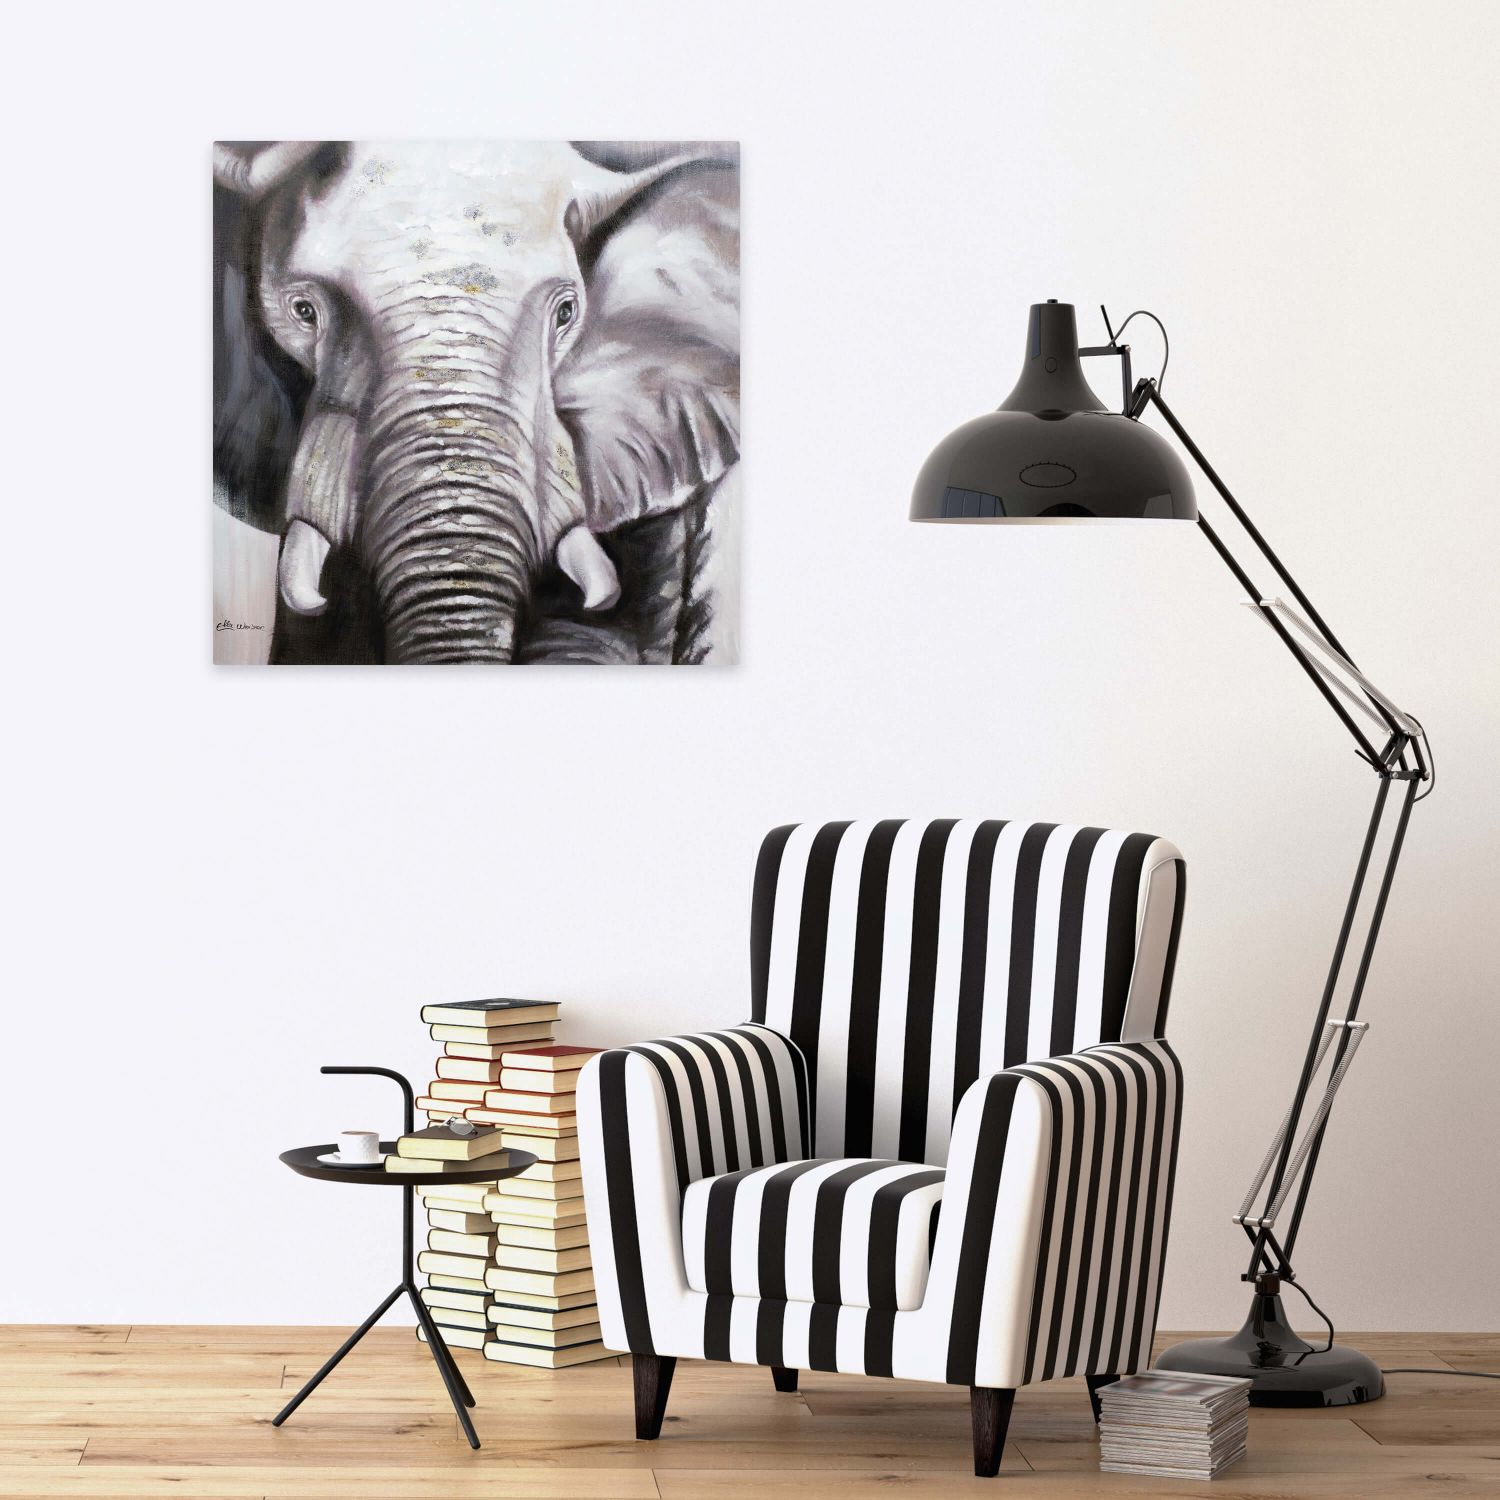 acryl gem lde 39 elefant deko schwarz weiss 39 handgemalt leinwand bilder 80x80 ebay. Black Bedroom Furniture Sets. Home Design Ideas